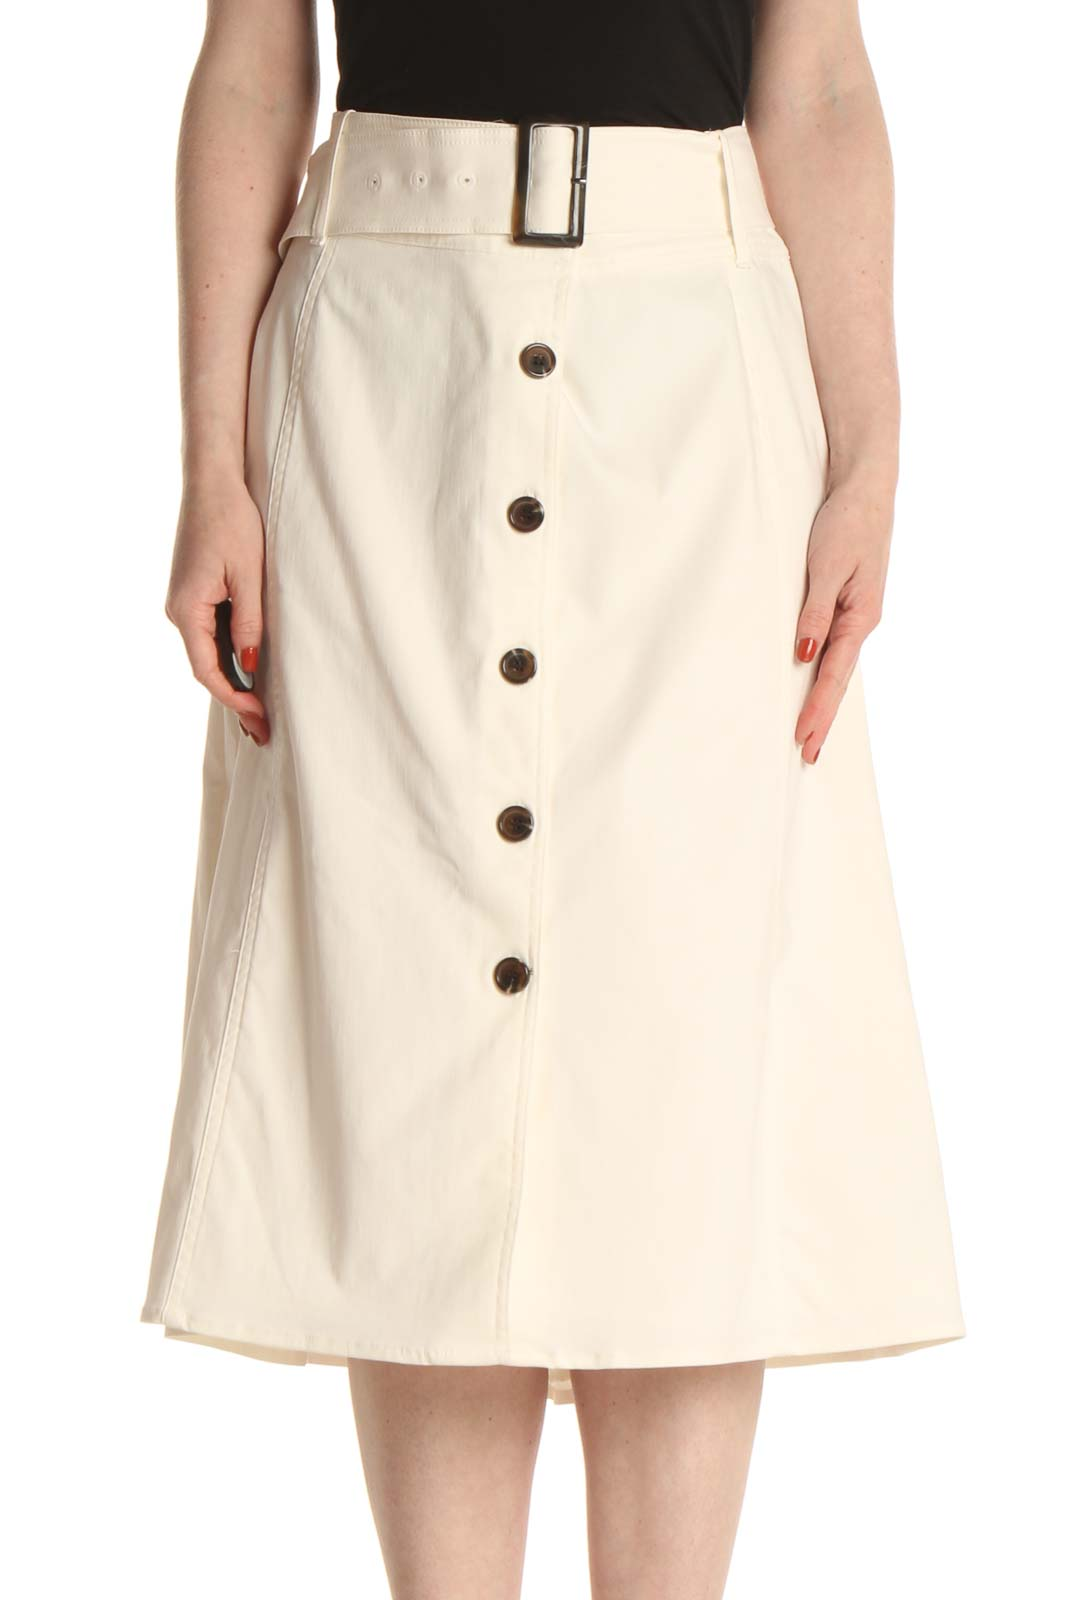 Beige Chic A-Line Skirt Front